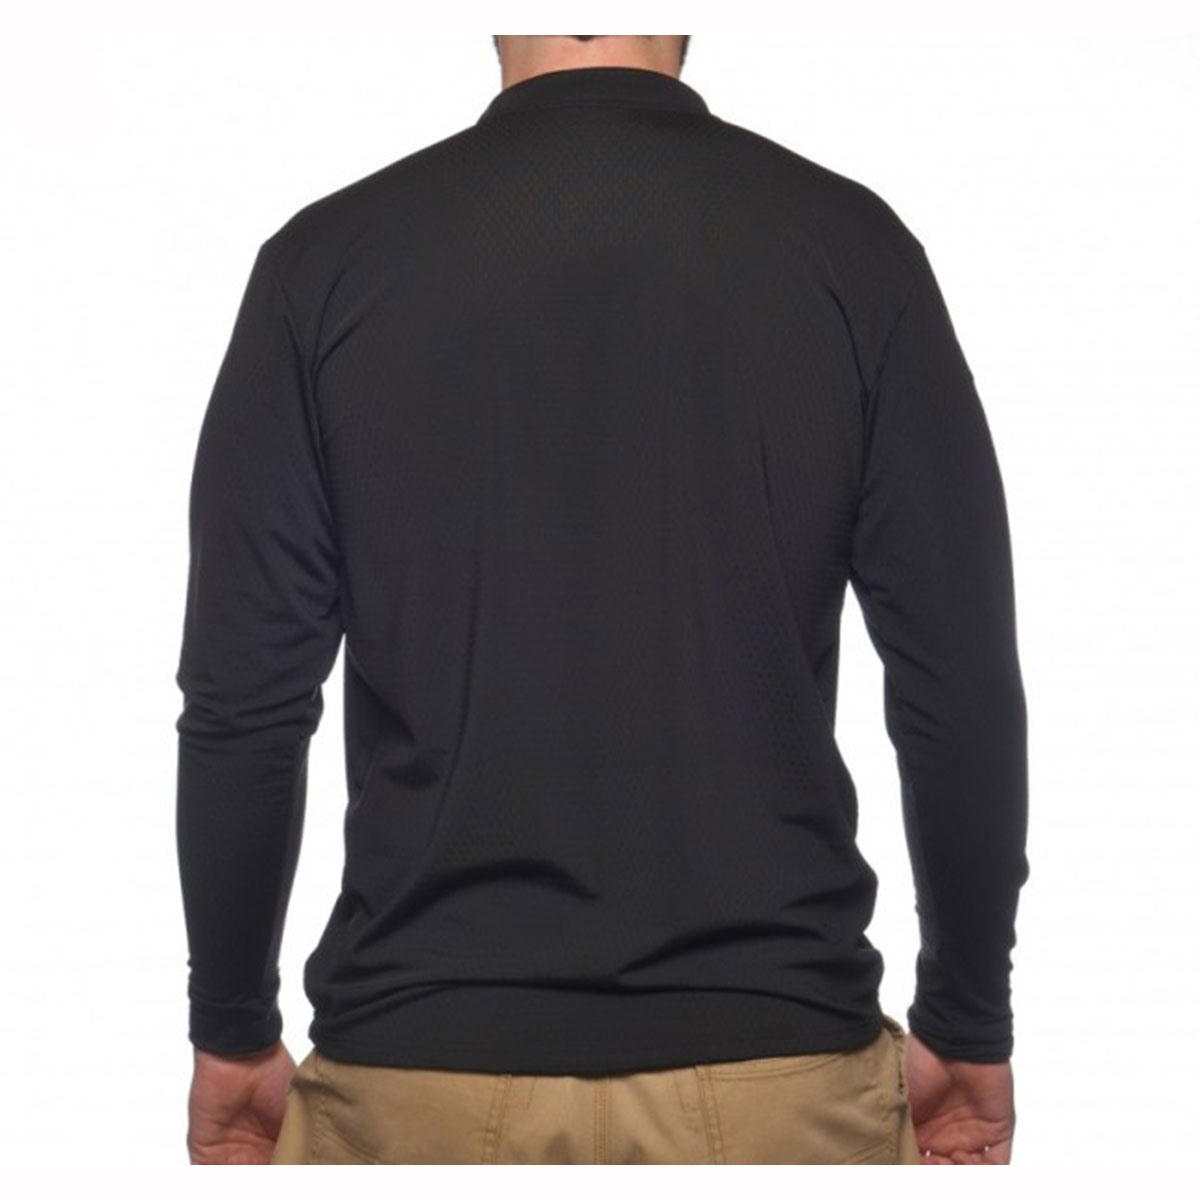 bbb4f284 VELOCITY SYSTEMS BOSS RUGBY SHIRT LONG SLEEVES | Brownells